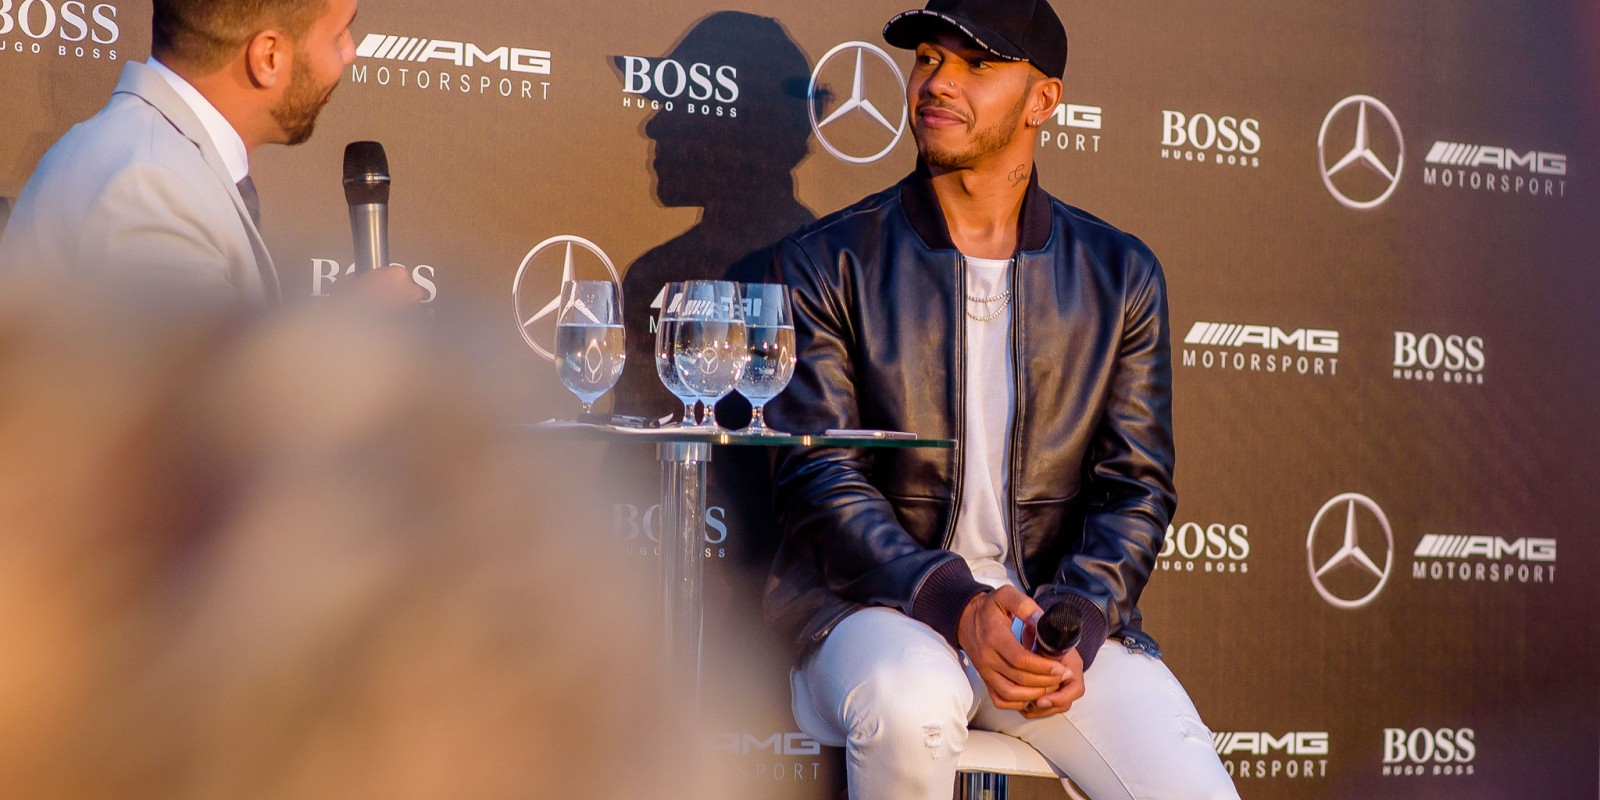 Photos from exclusive Mercedes Benz - Hugo Boss Formula 1 party in Hungary